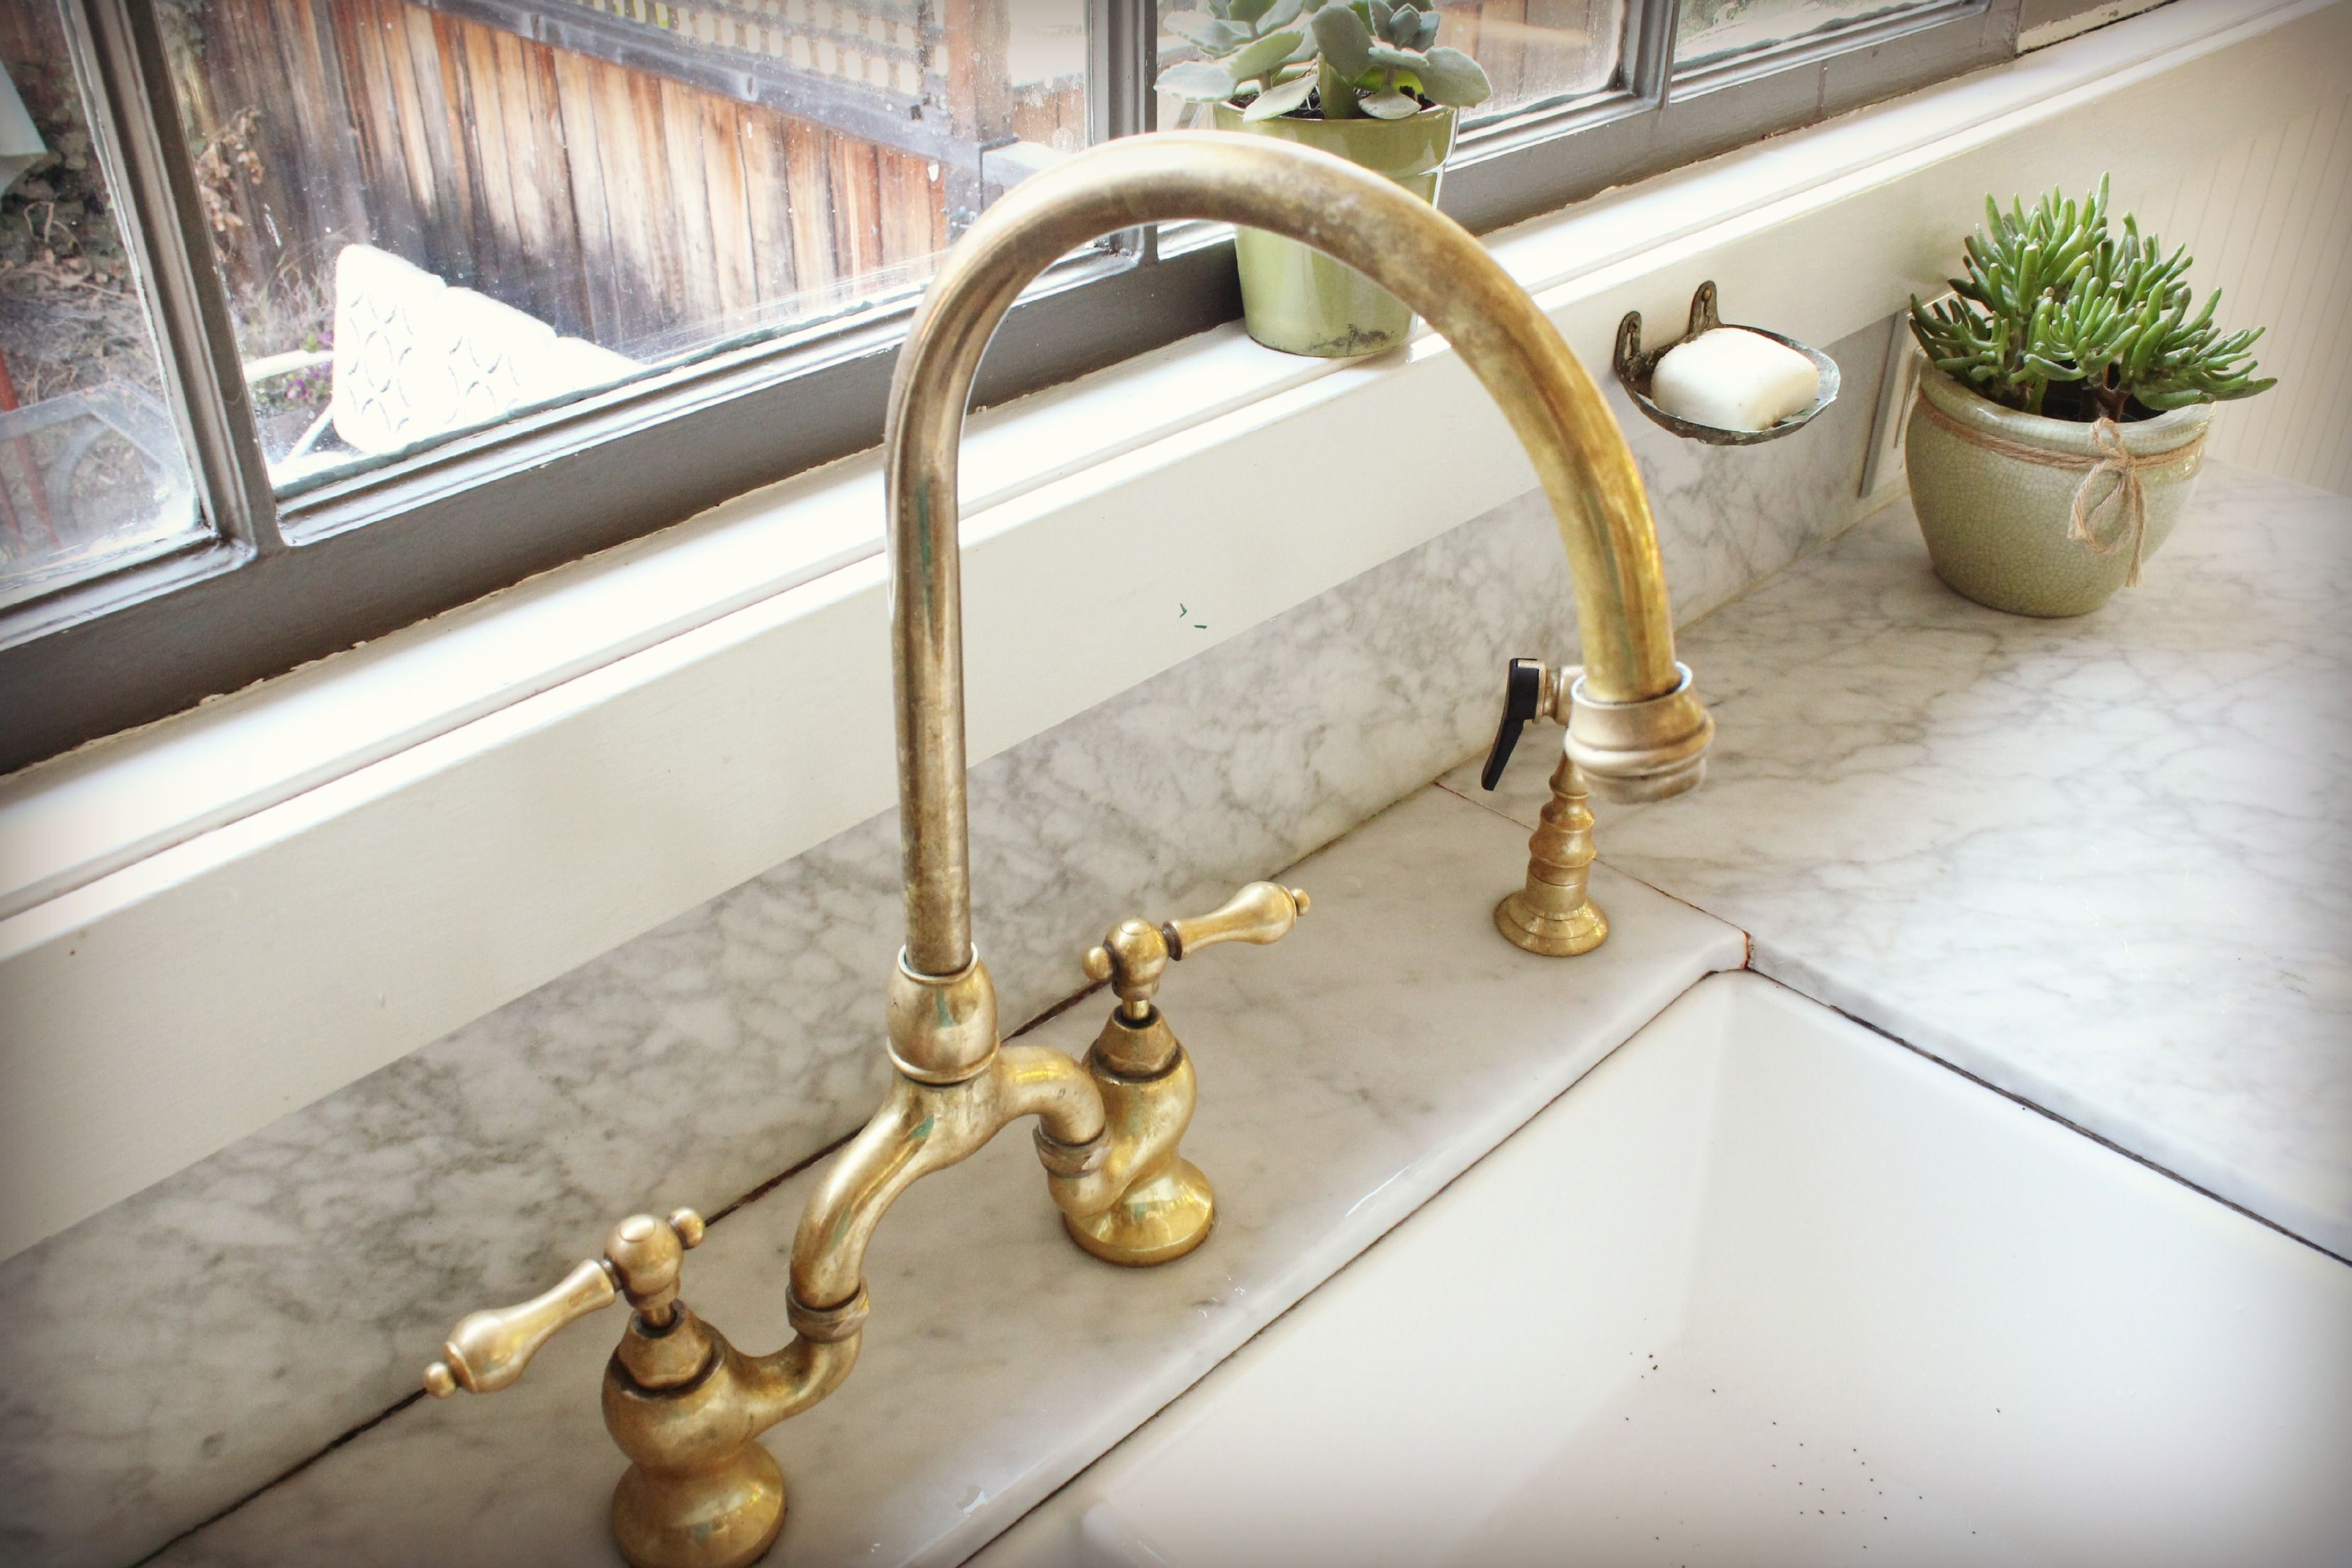 Antique Kitchen Faucets Unlacquered Brass Faucet Detail Kitchen for dimensions 3318 X 2212